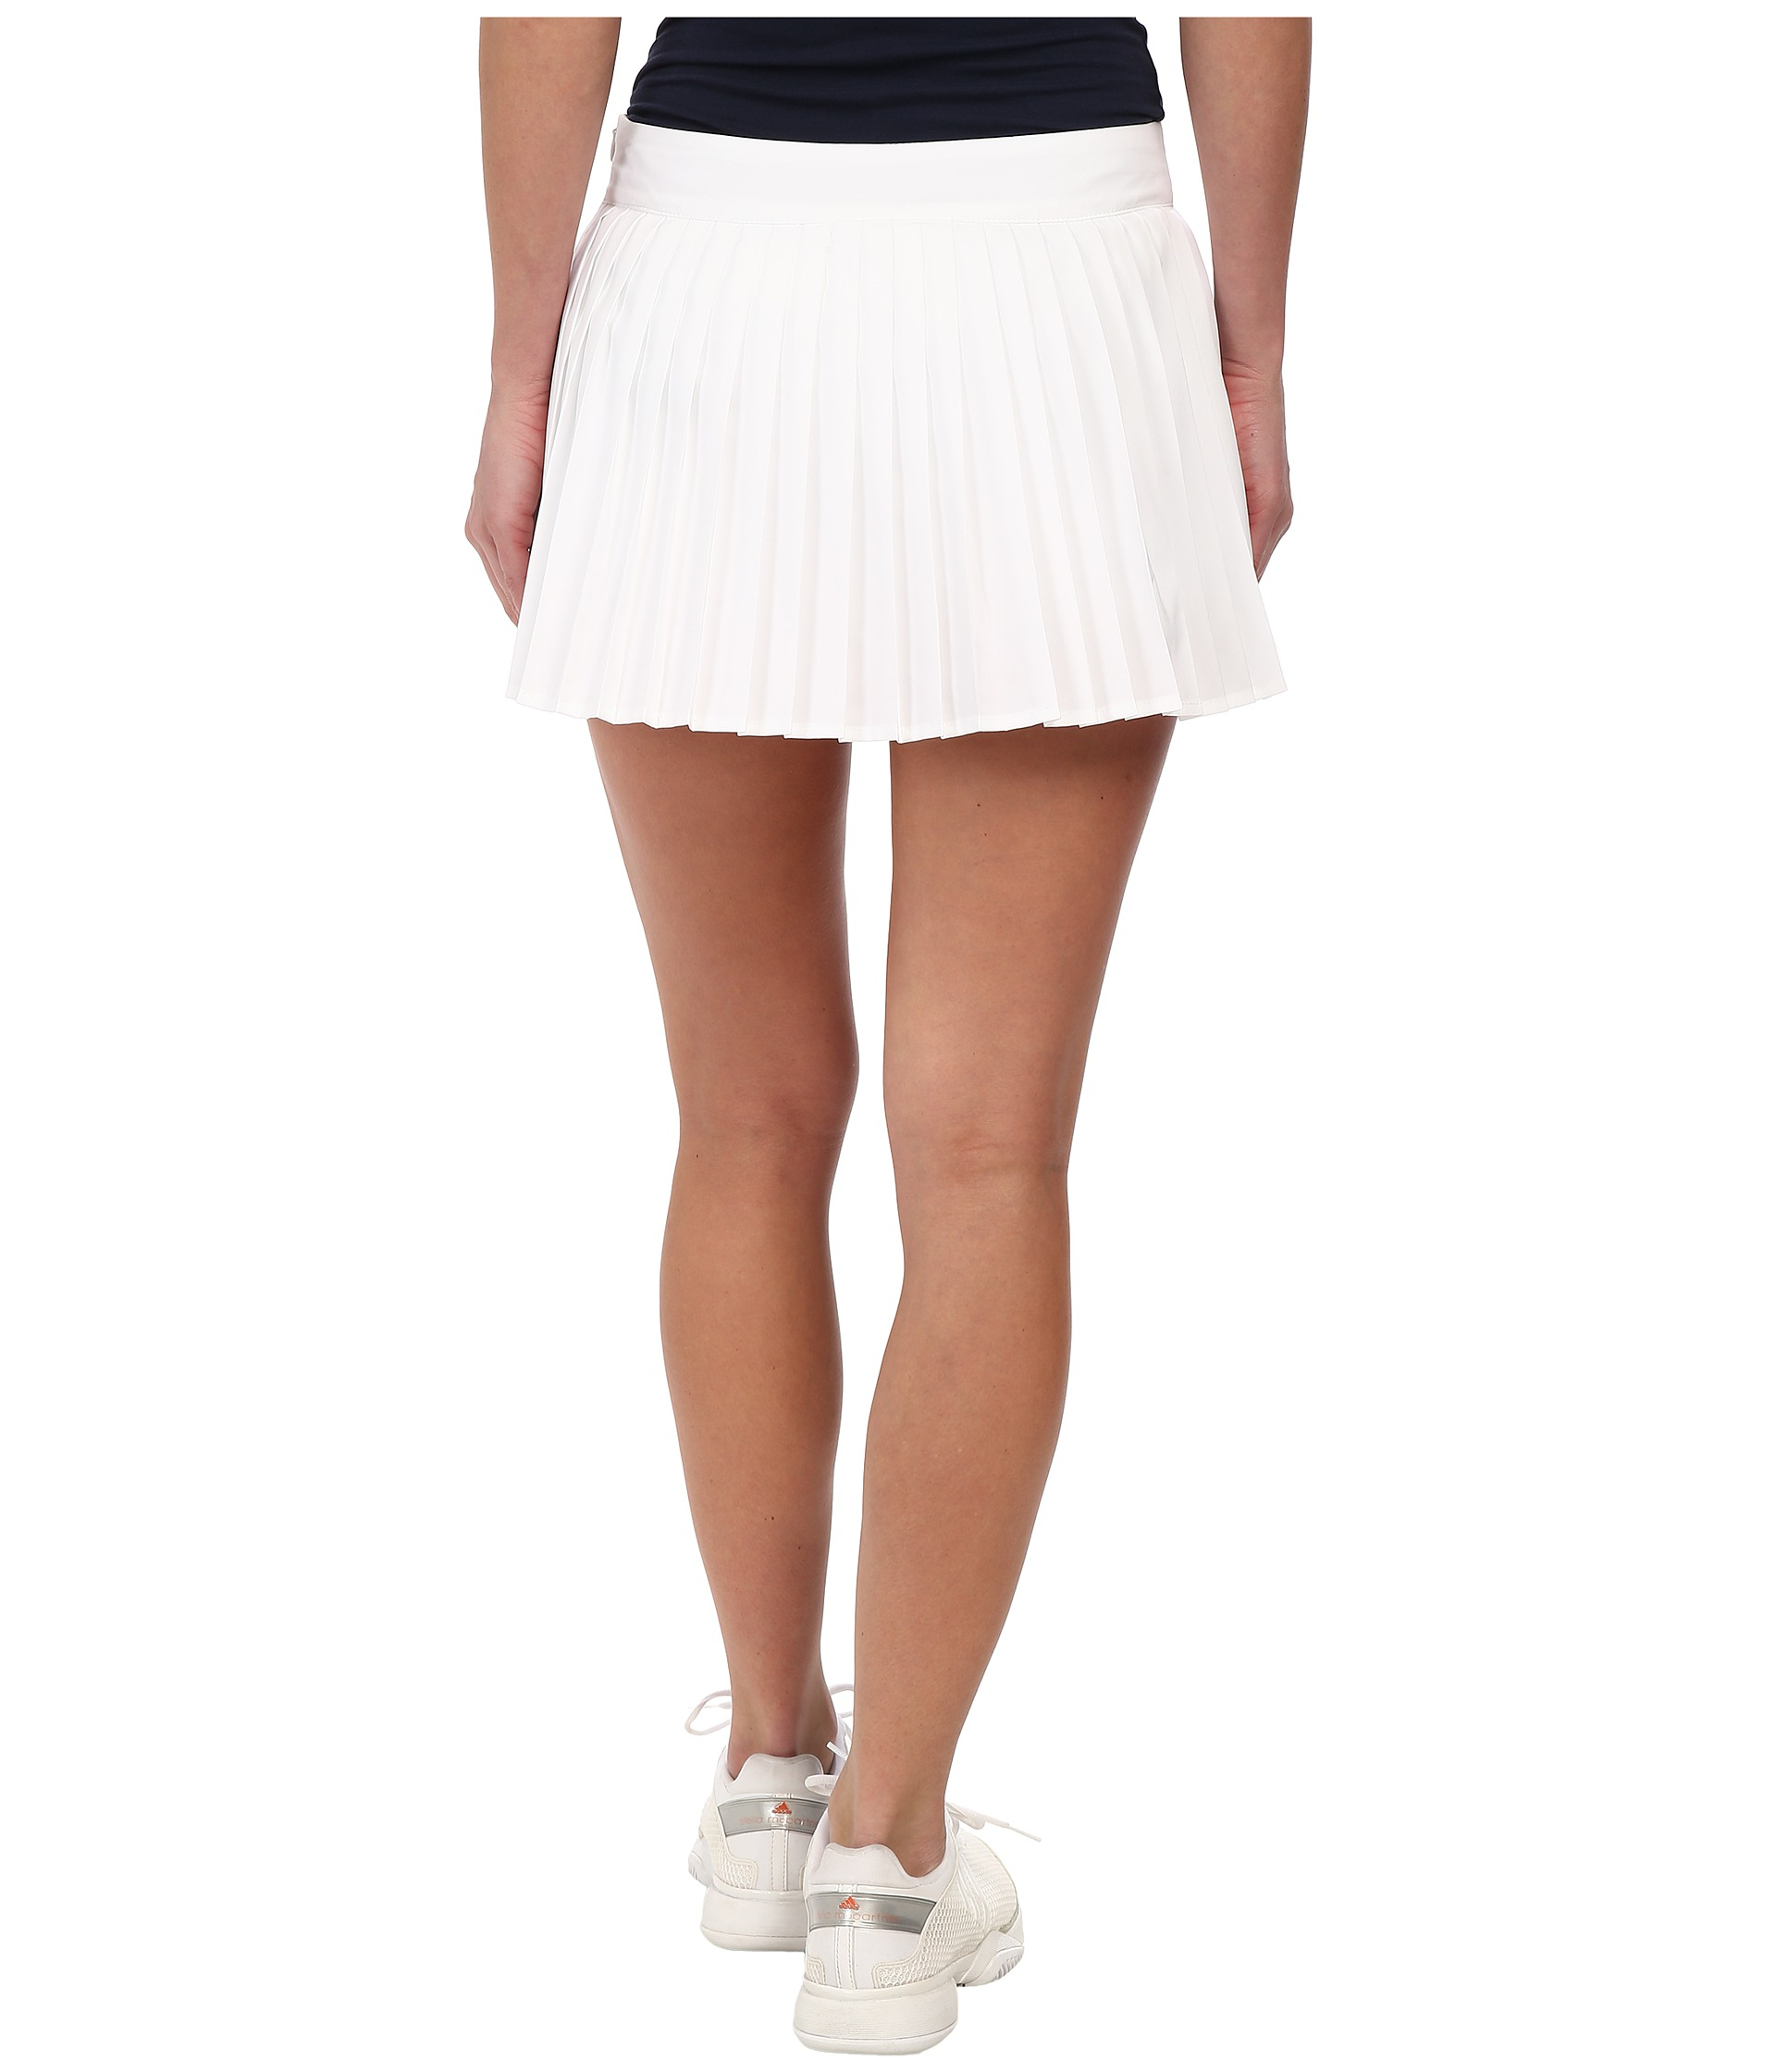 lacoste technical pleated tennis skirt in white lyst